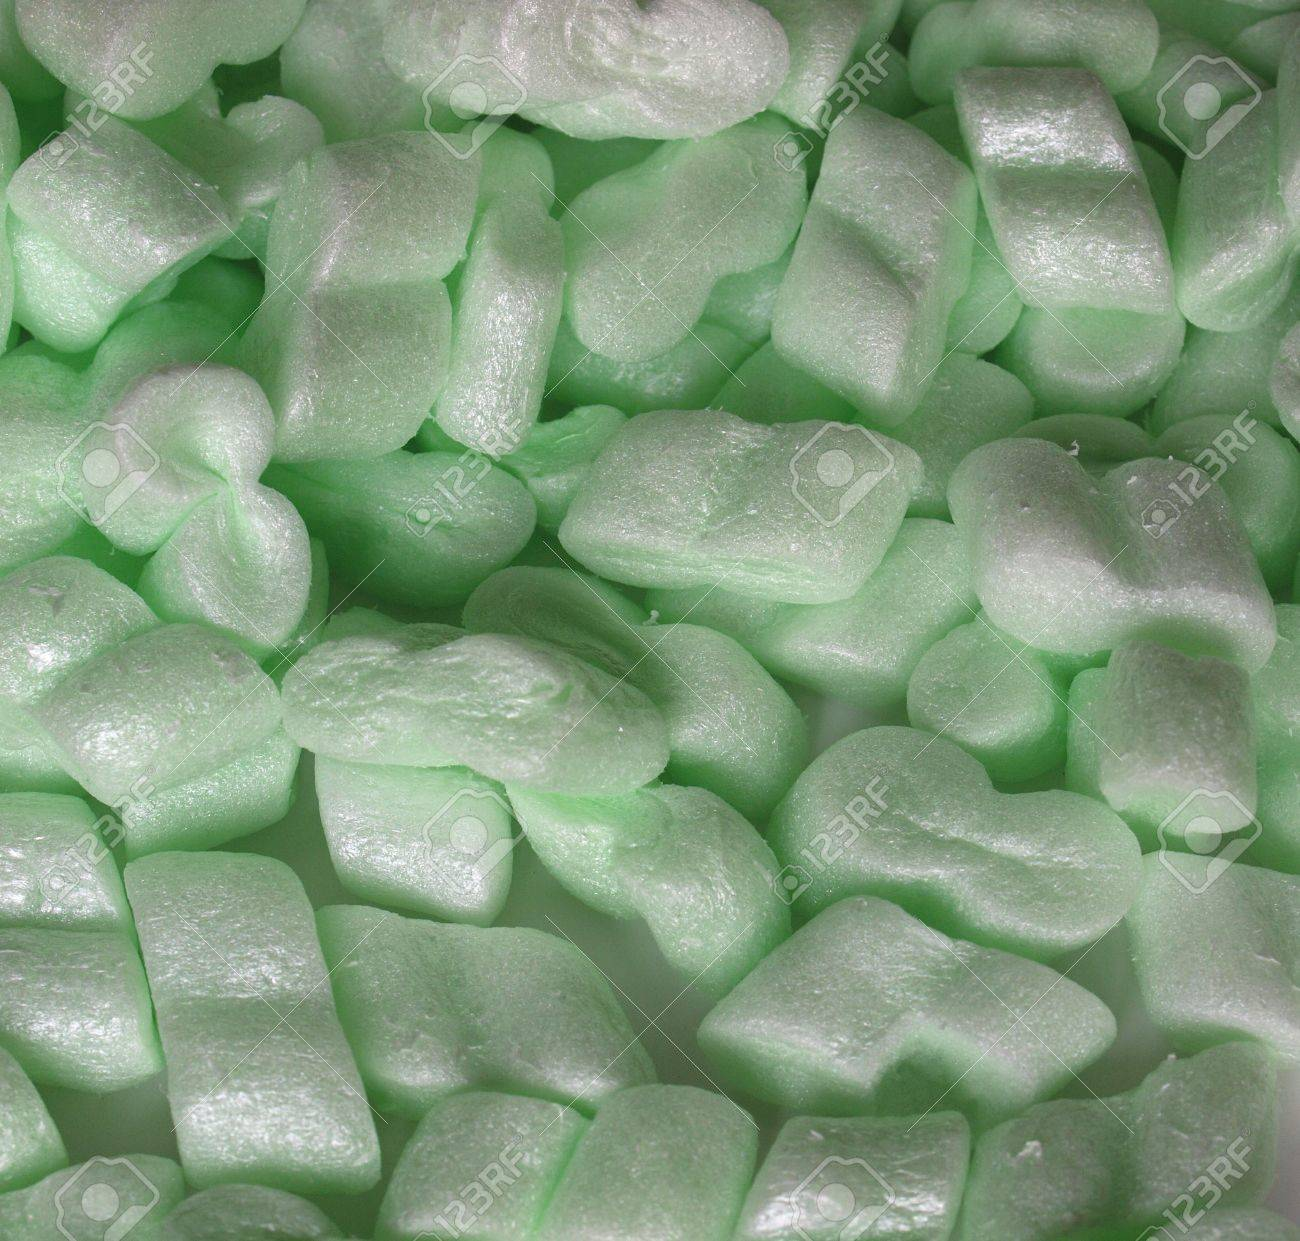 polystyrene beads used for protective package insulation stock photo - Polystyrene Beads